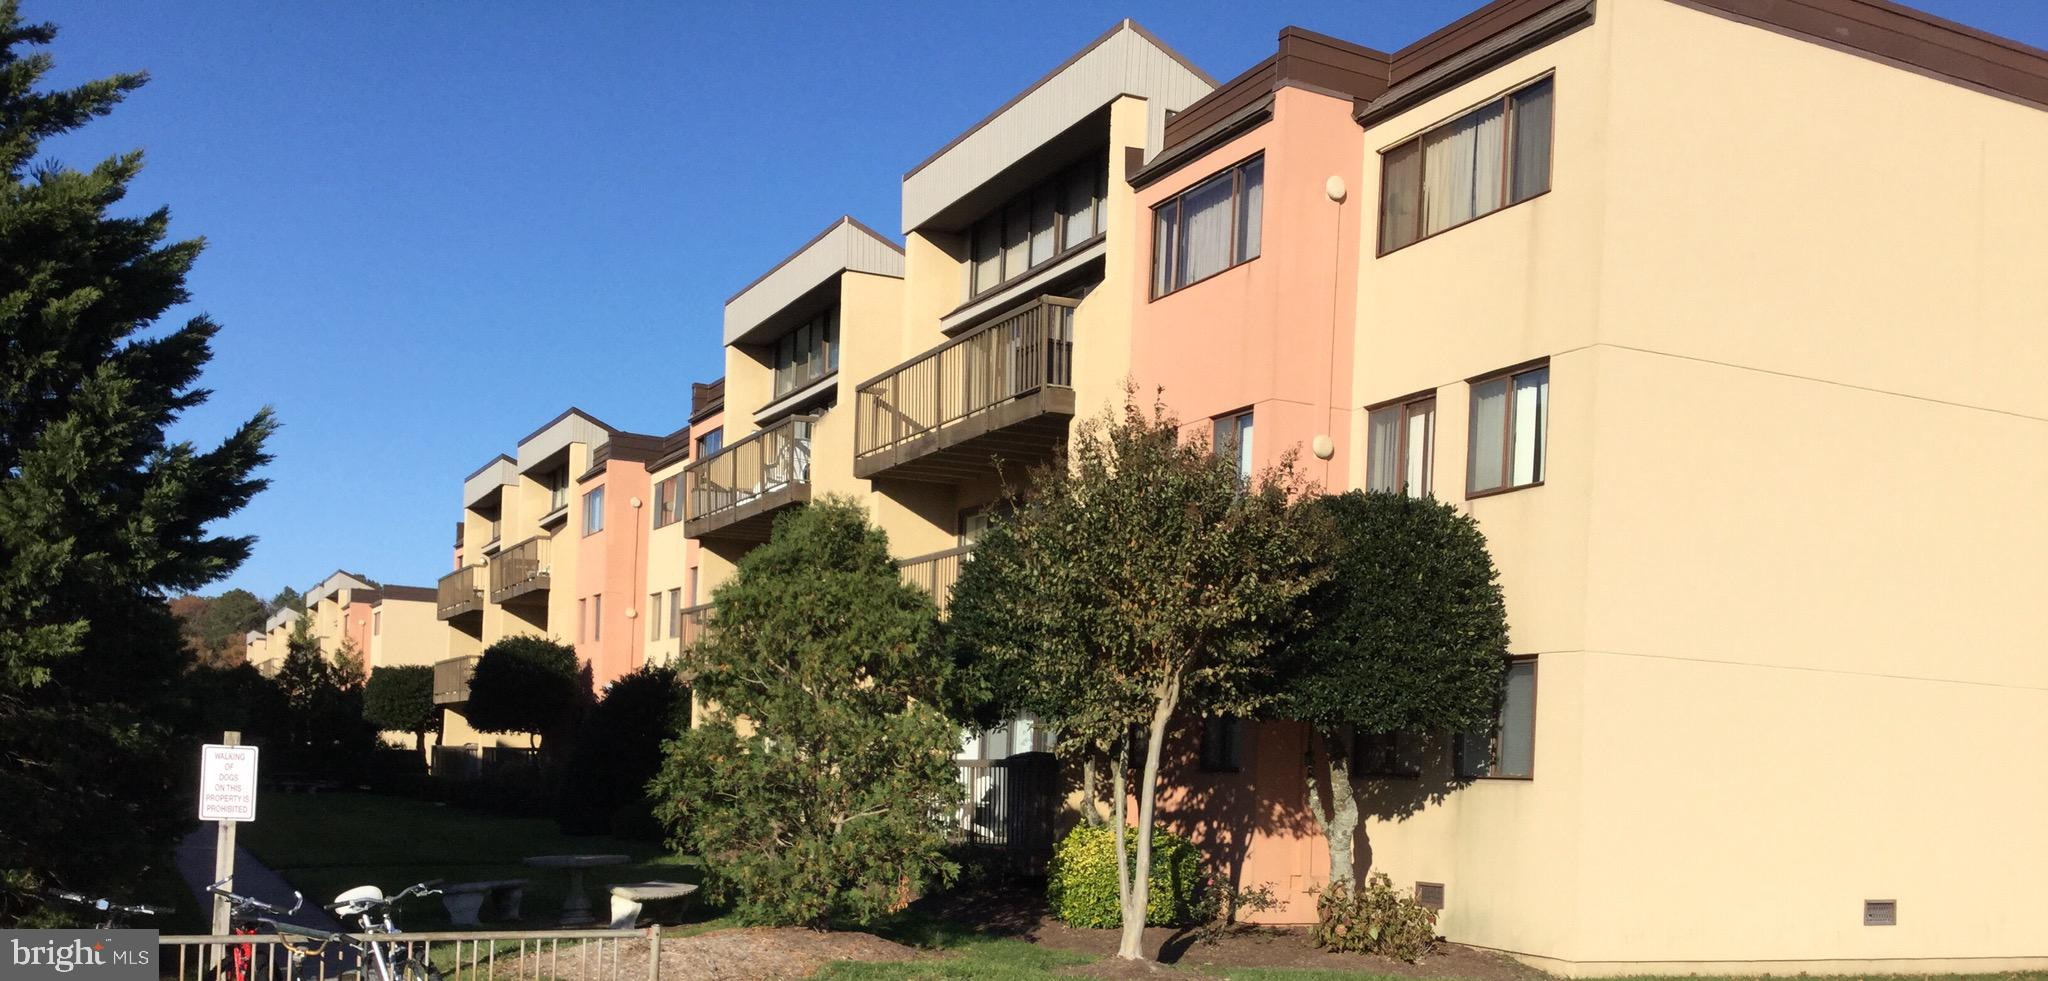 Spacious 2 Bedroom/2 Bath end unit sits in desirable Caine Woods just a few blocks from the beach. O